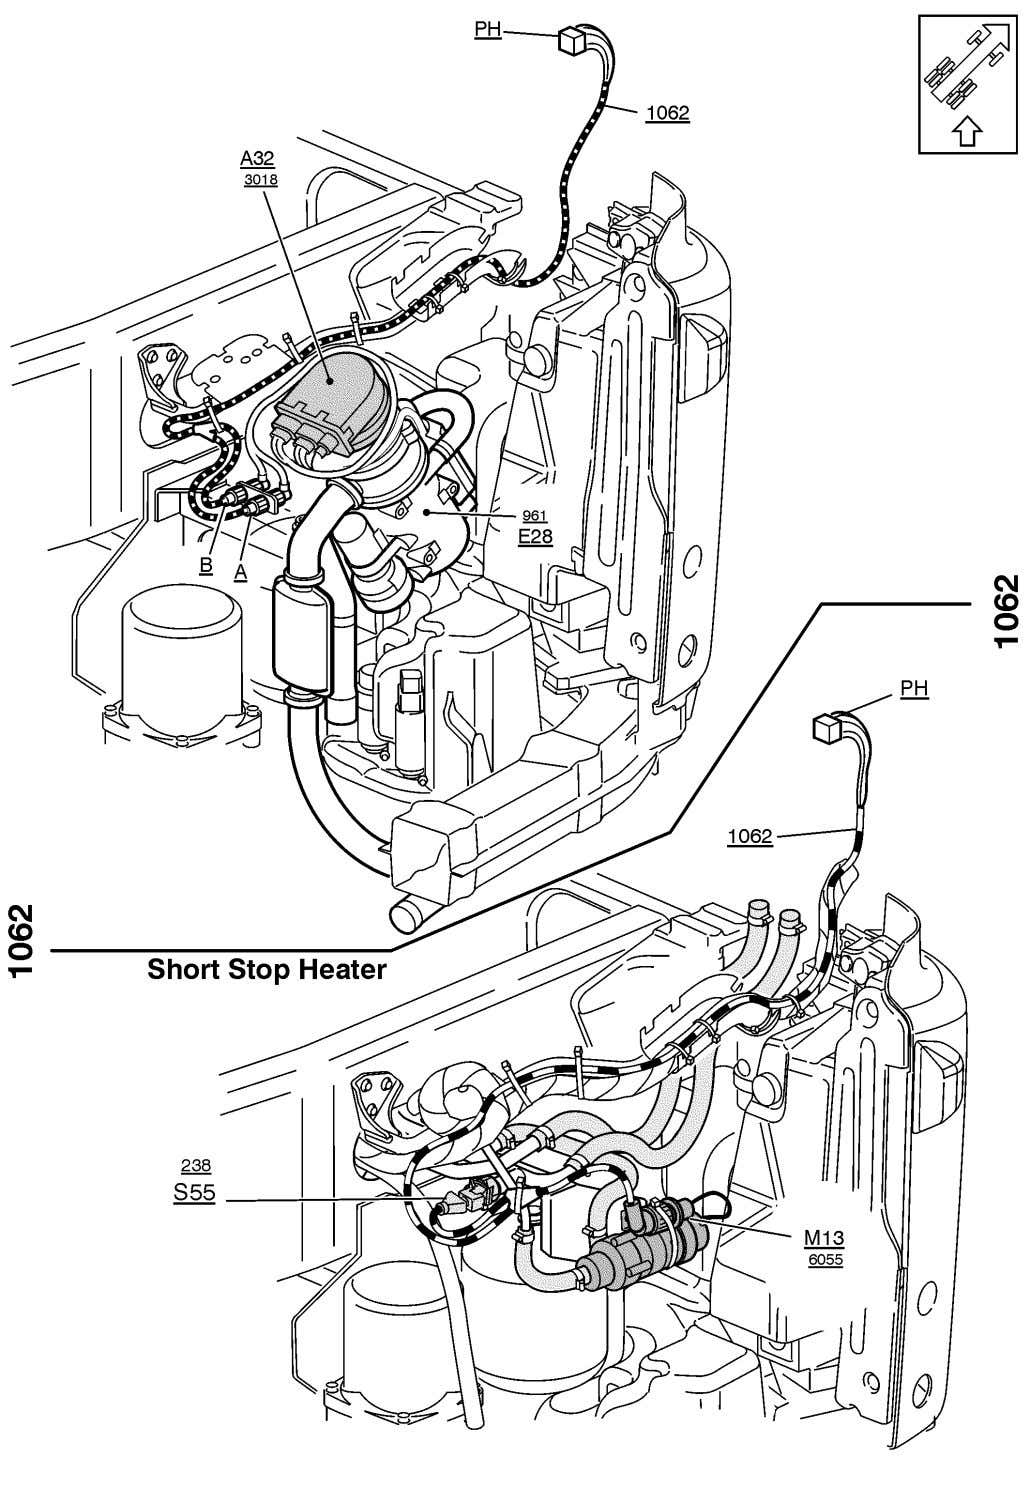 T3017729 Wiring diagram Page 171 (298)